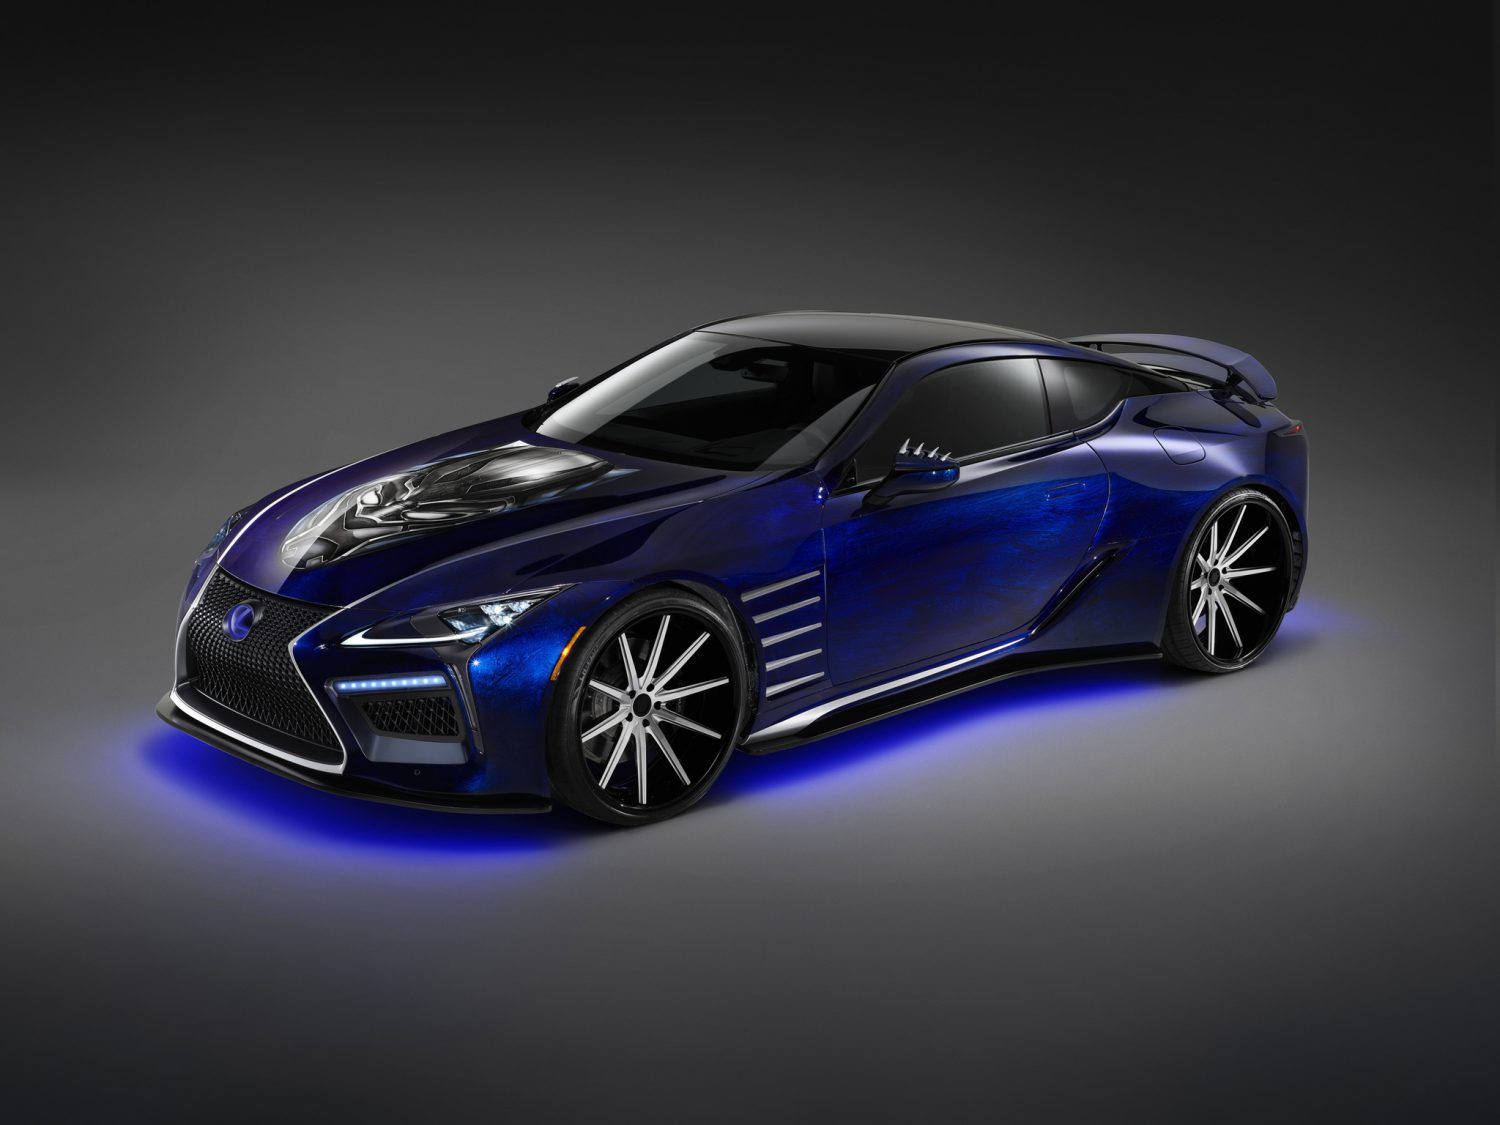 Lexus Lc 500 Price >> Lexus Introduces Two New Vehicles Inspired By Marvel Studios